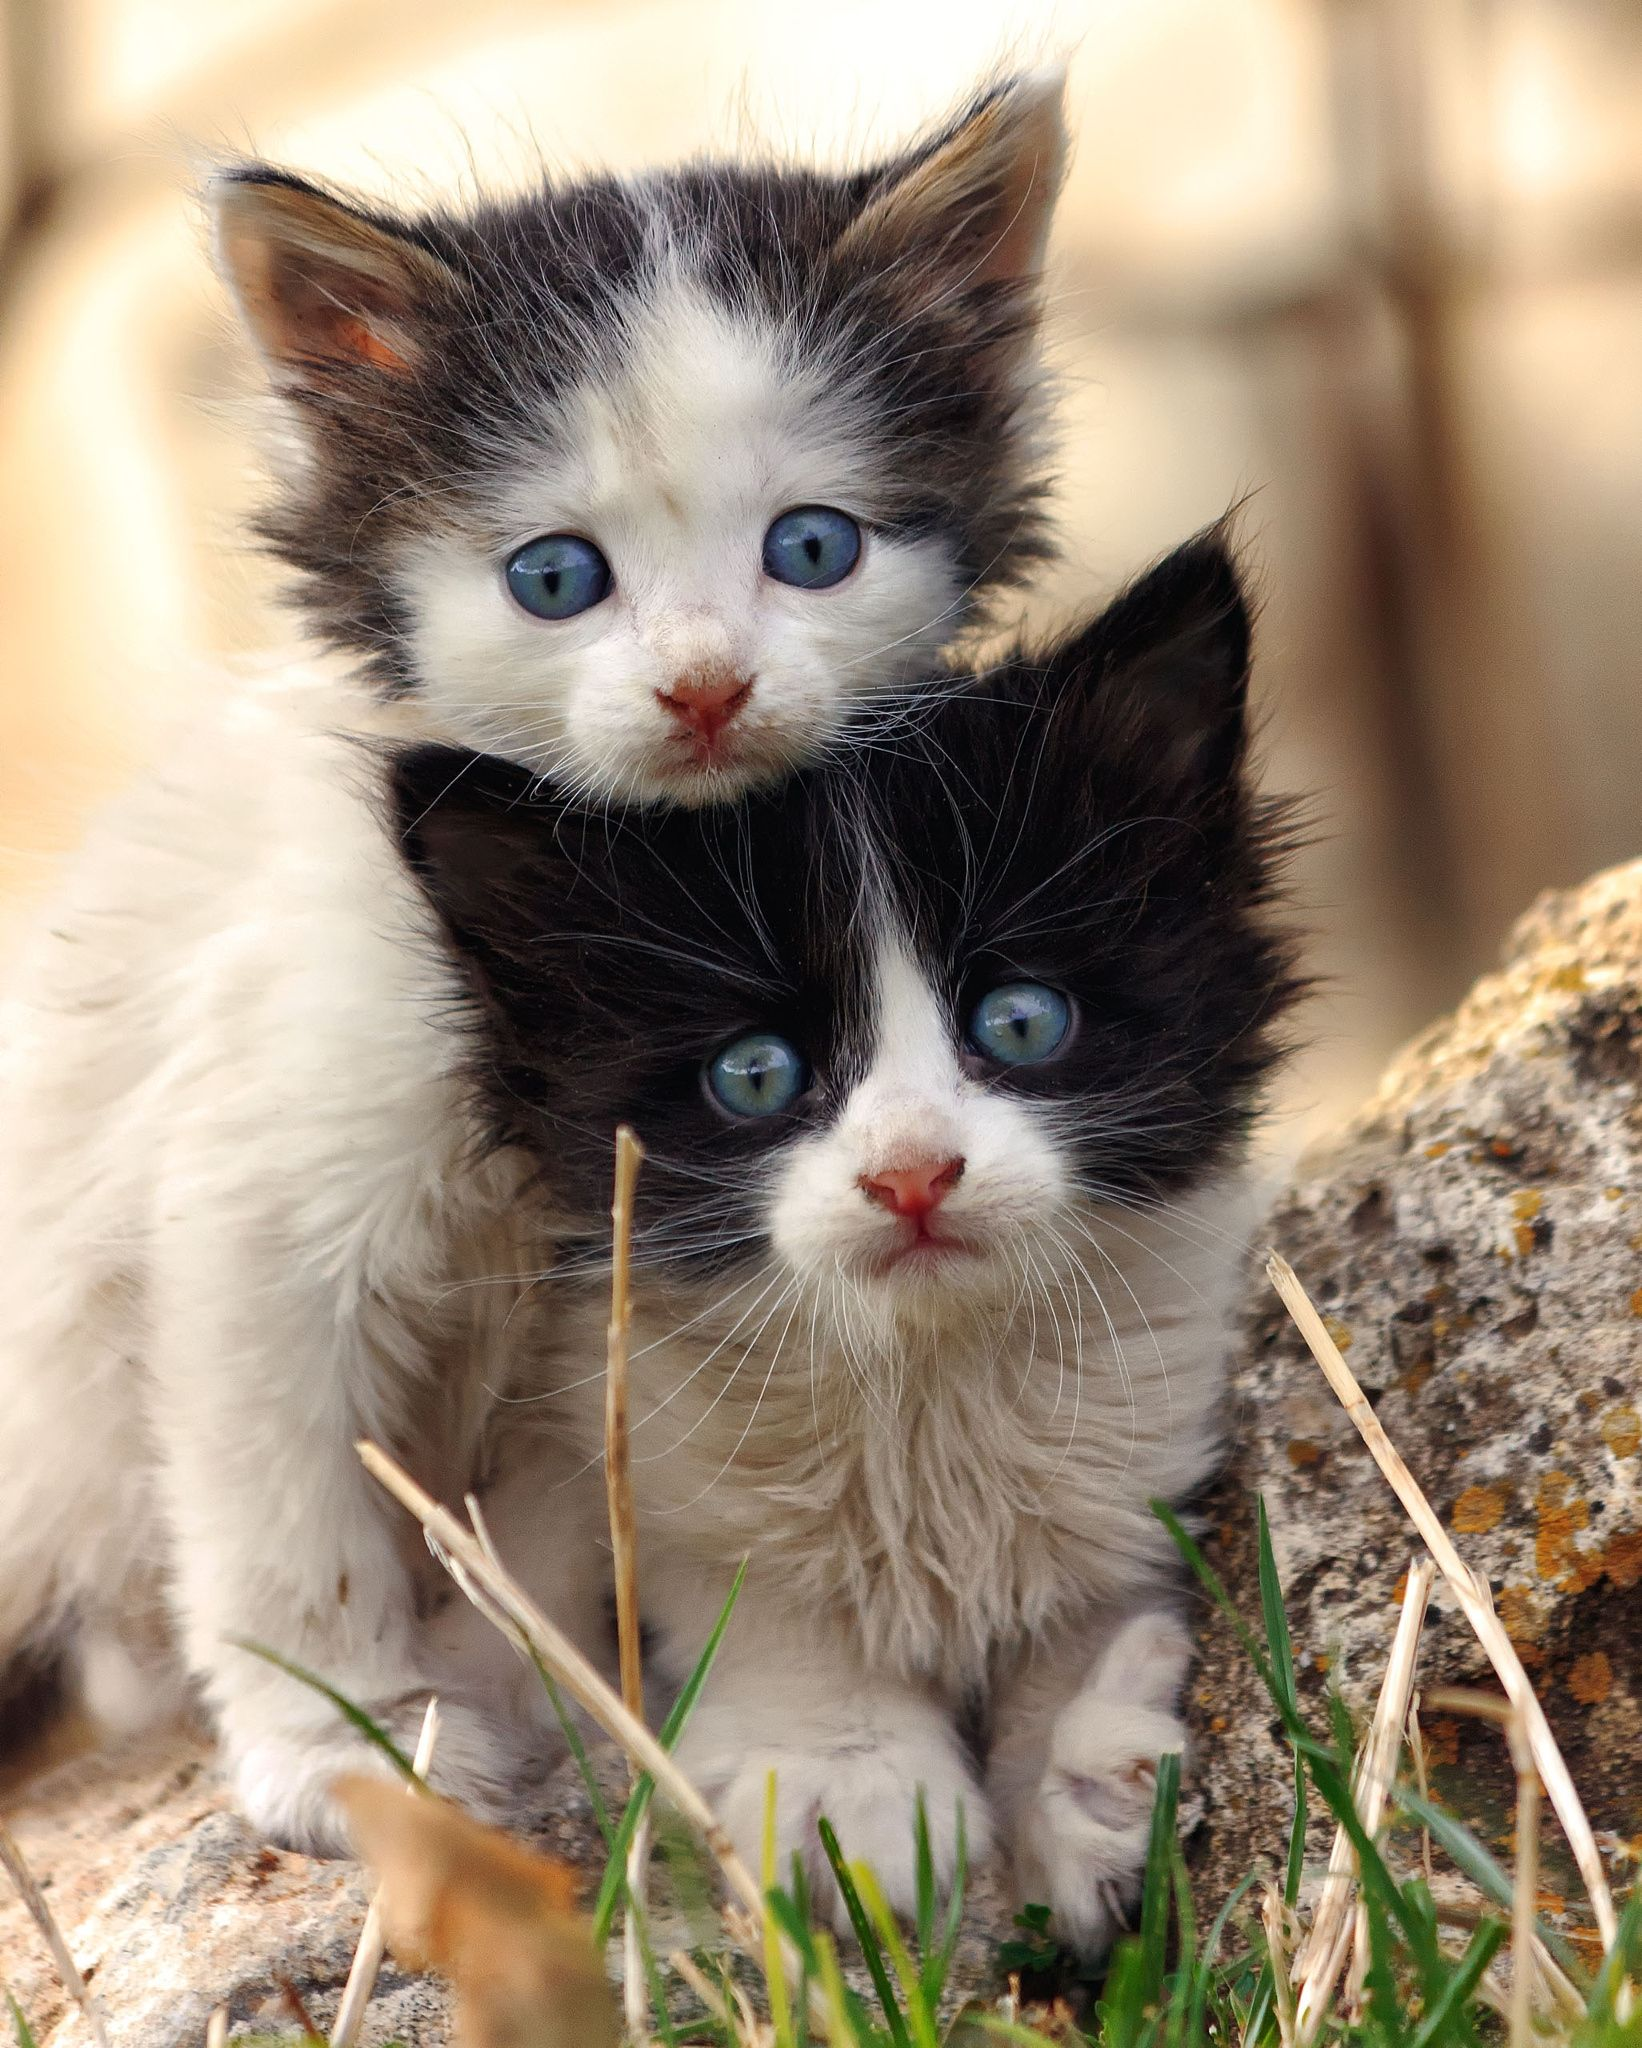 Two Kittens Cat Kitty Cute Kittens Cutest Cute Animals Cute Cats